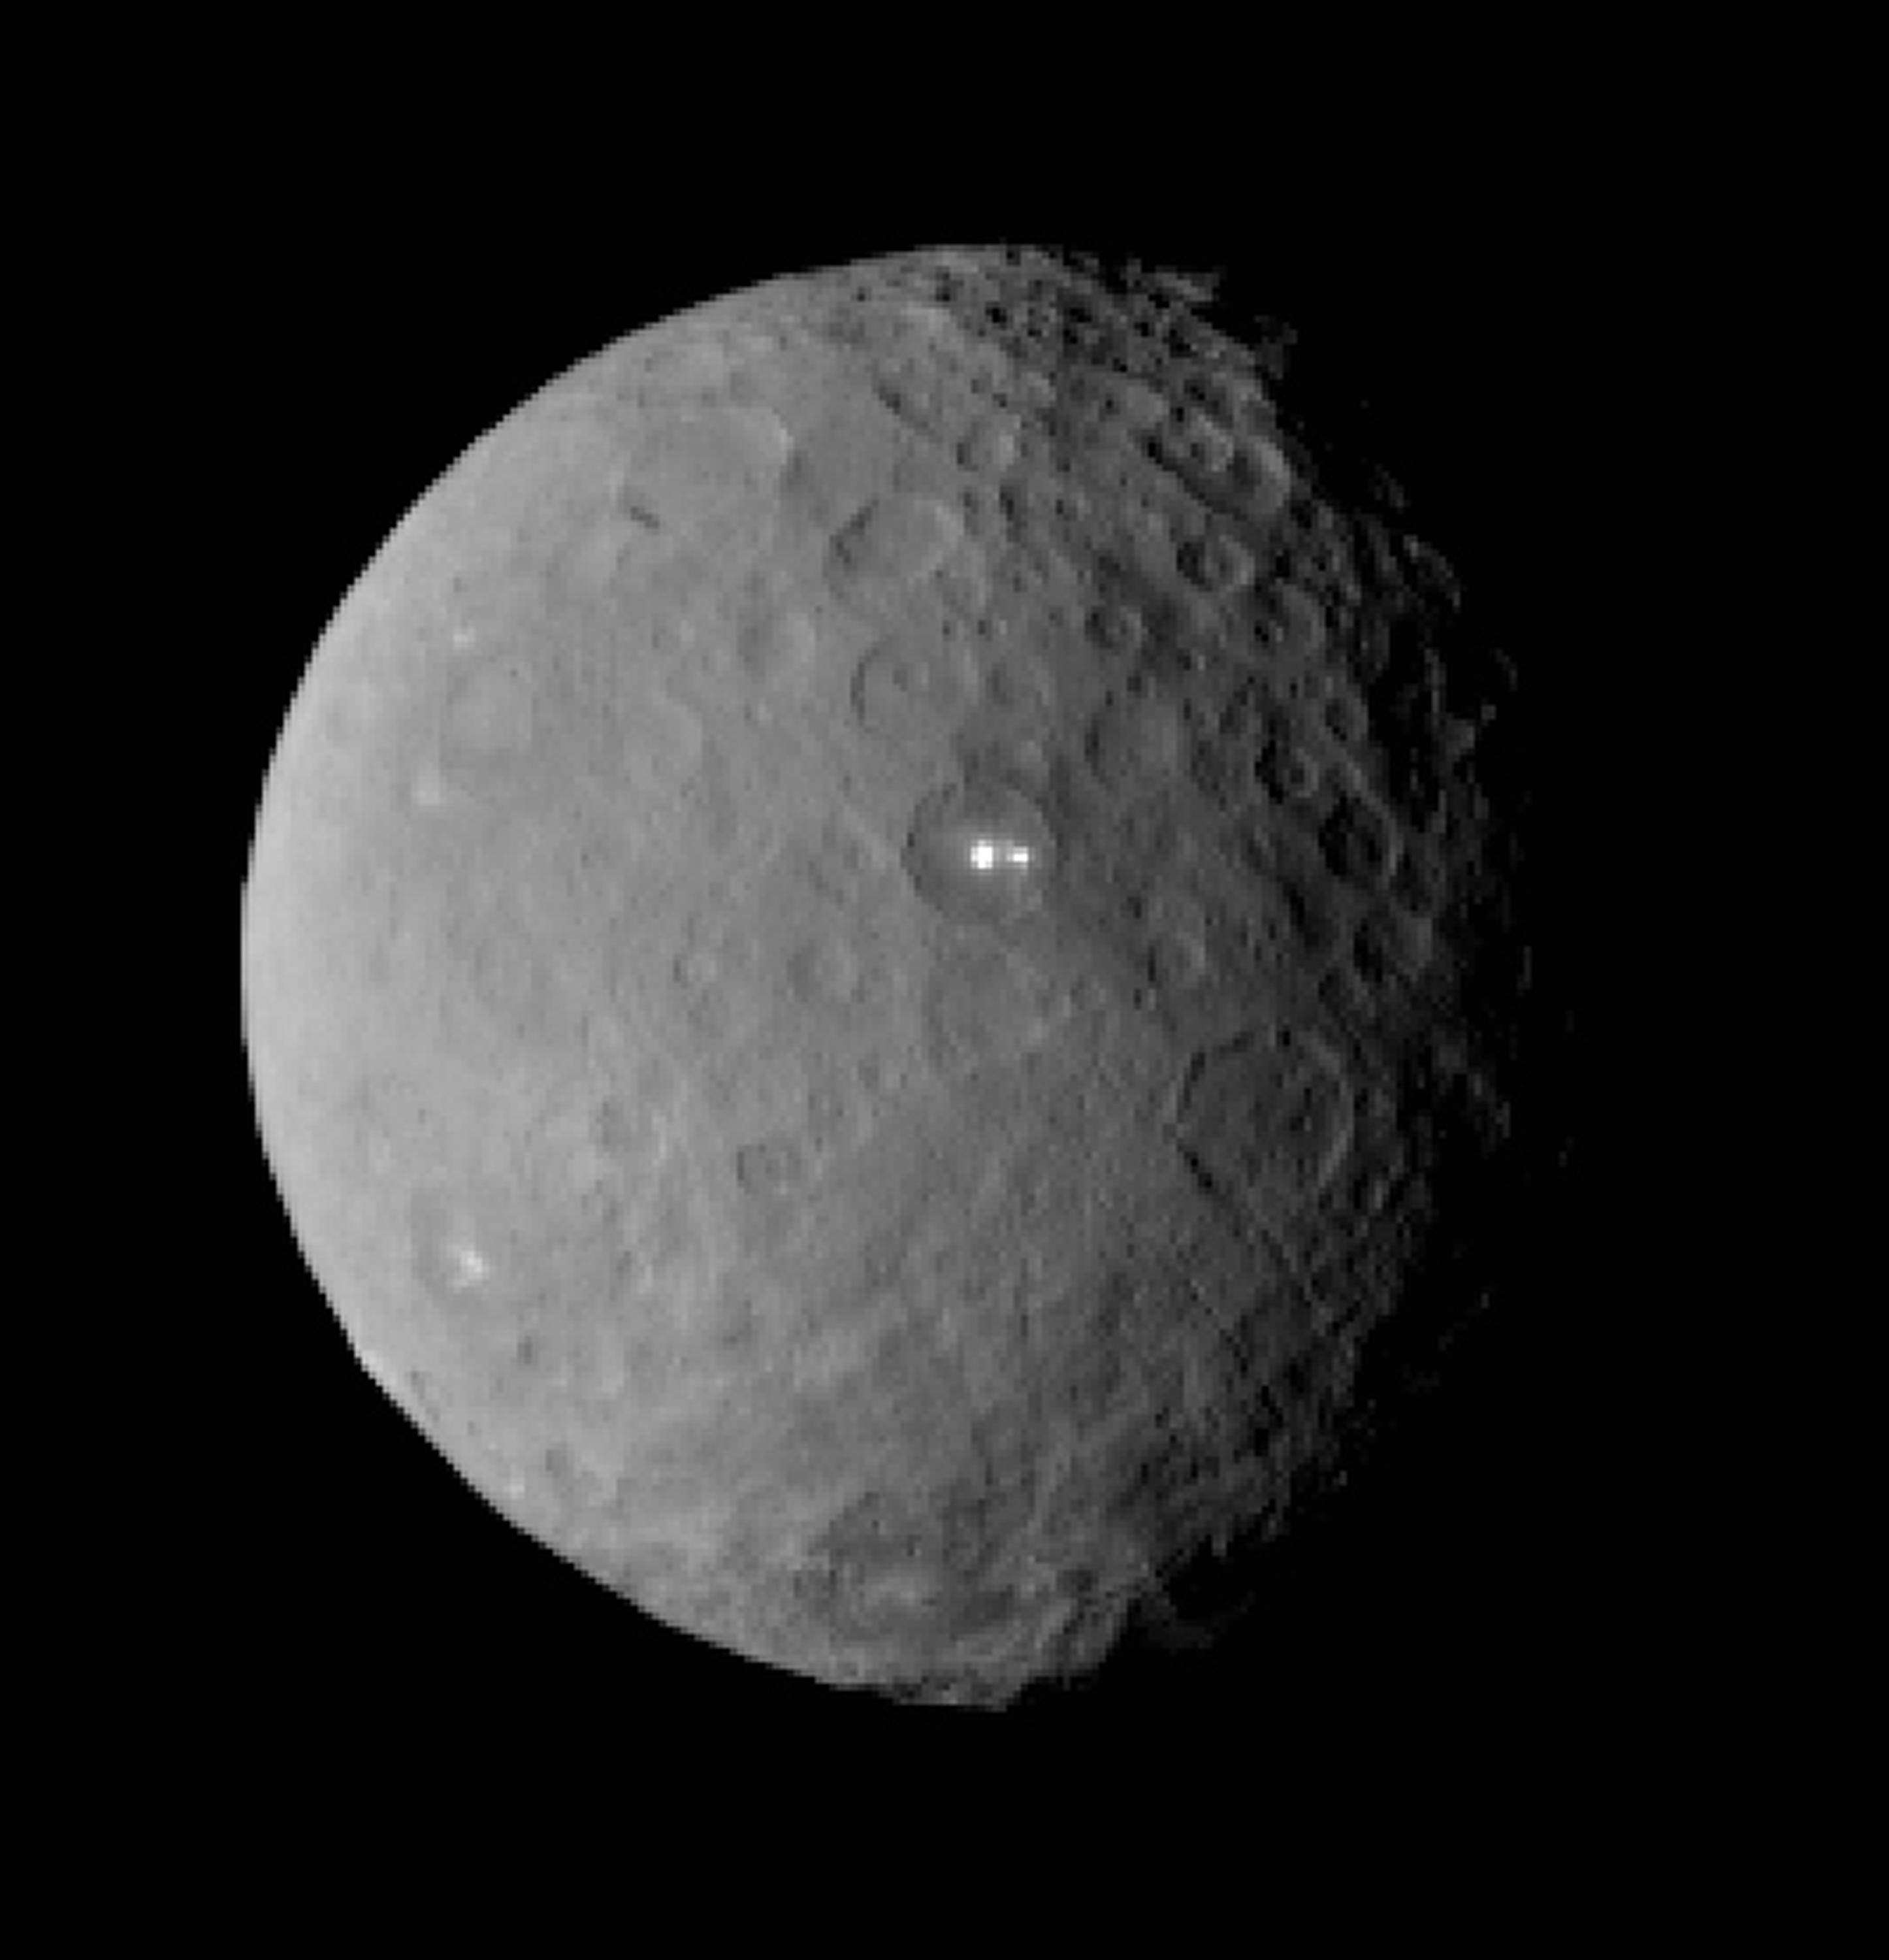 NASA spacecraft nearing its second stop _ dwarf planet Ceres